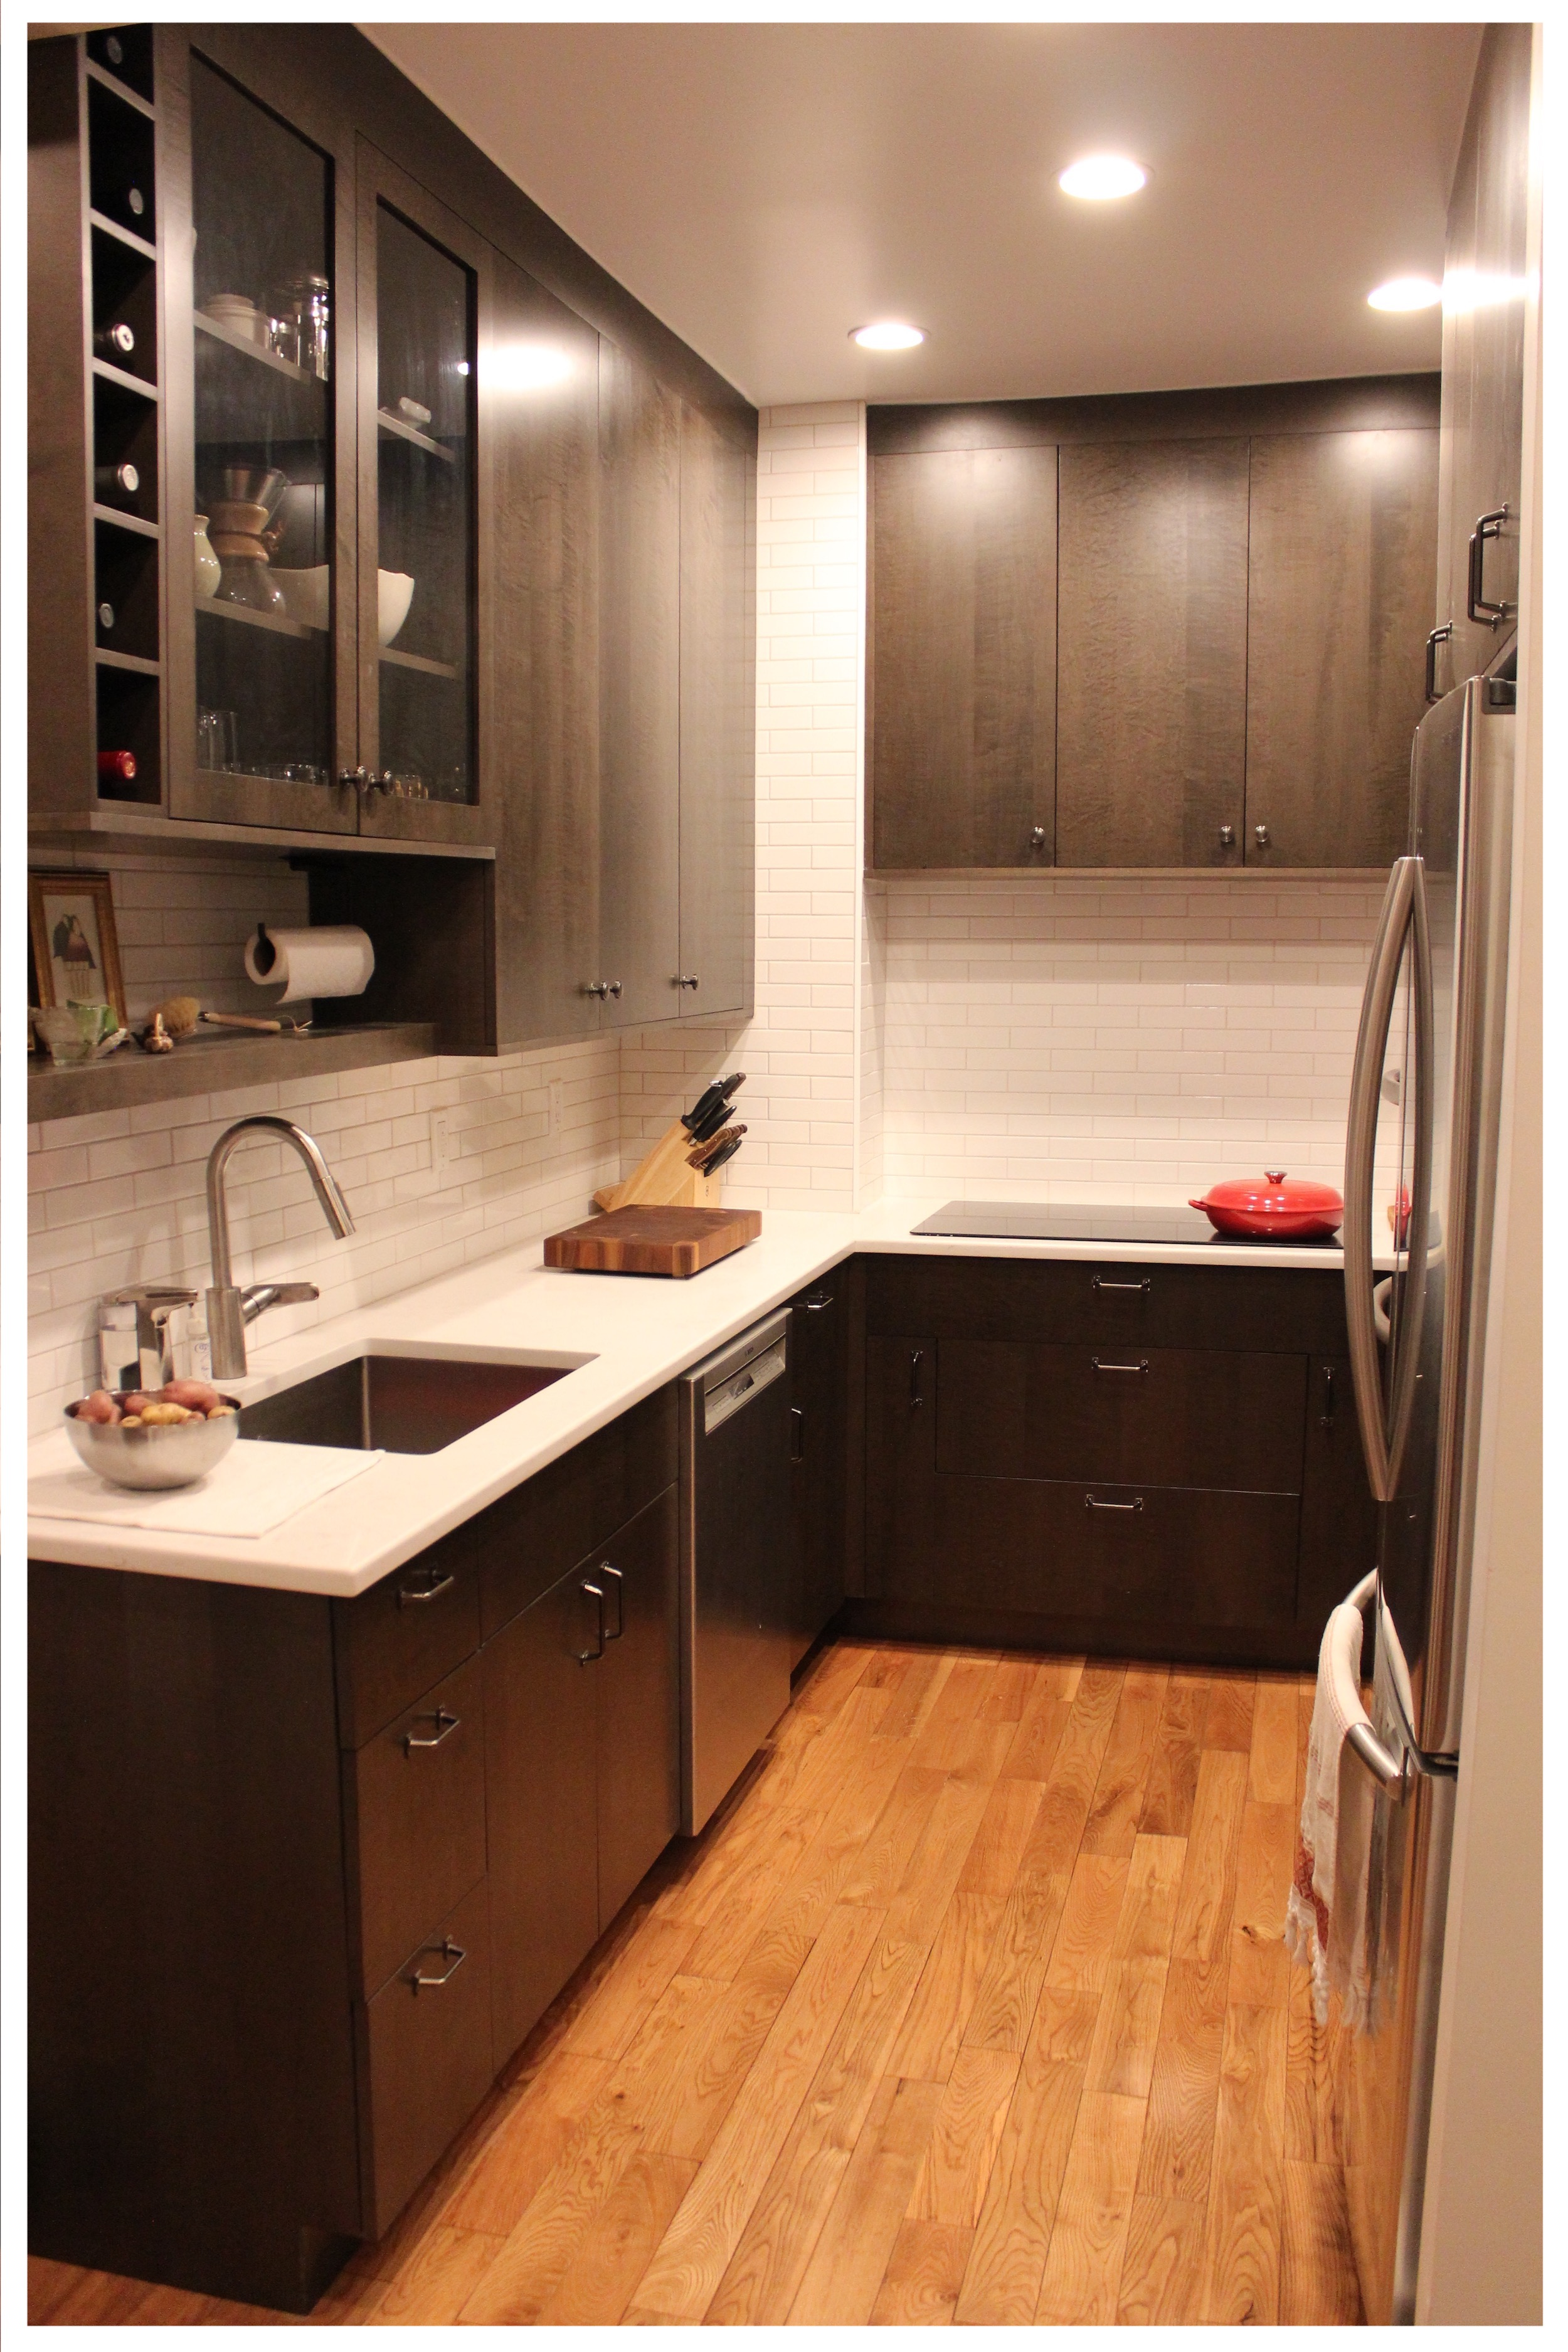 1_KitchenVisions-Modern-Kitchen-Boston.jpg